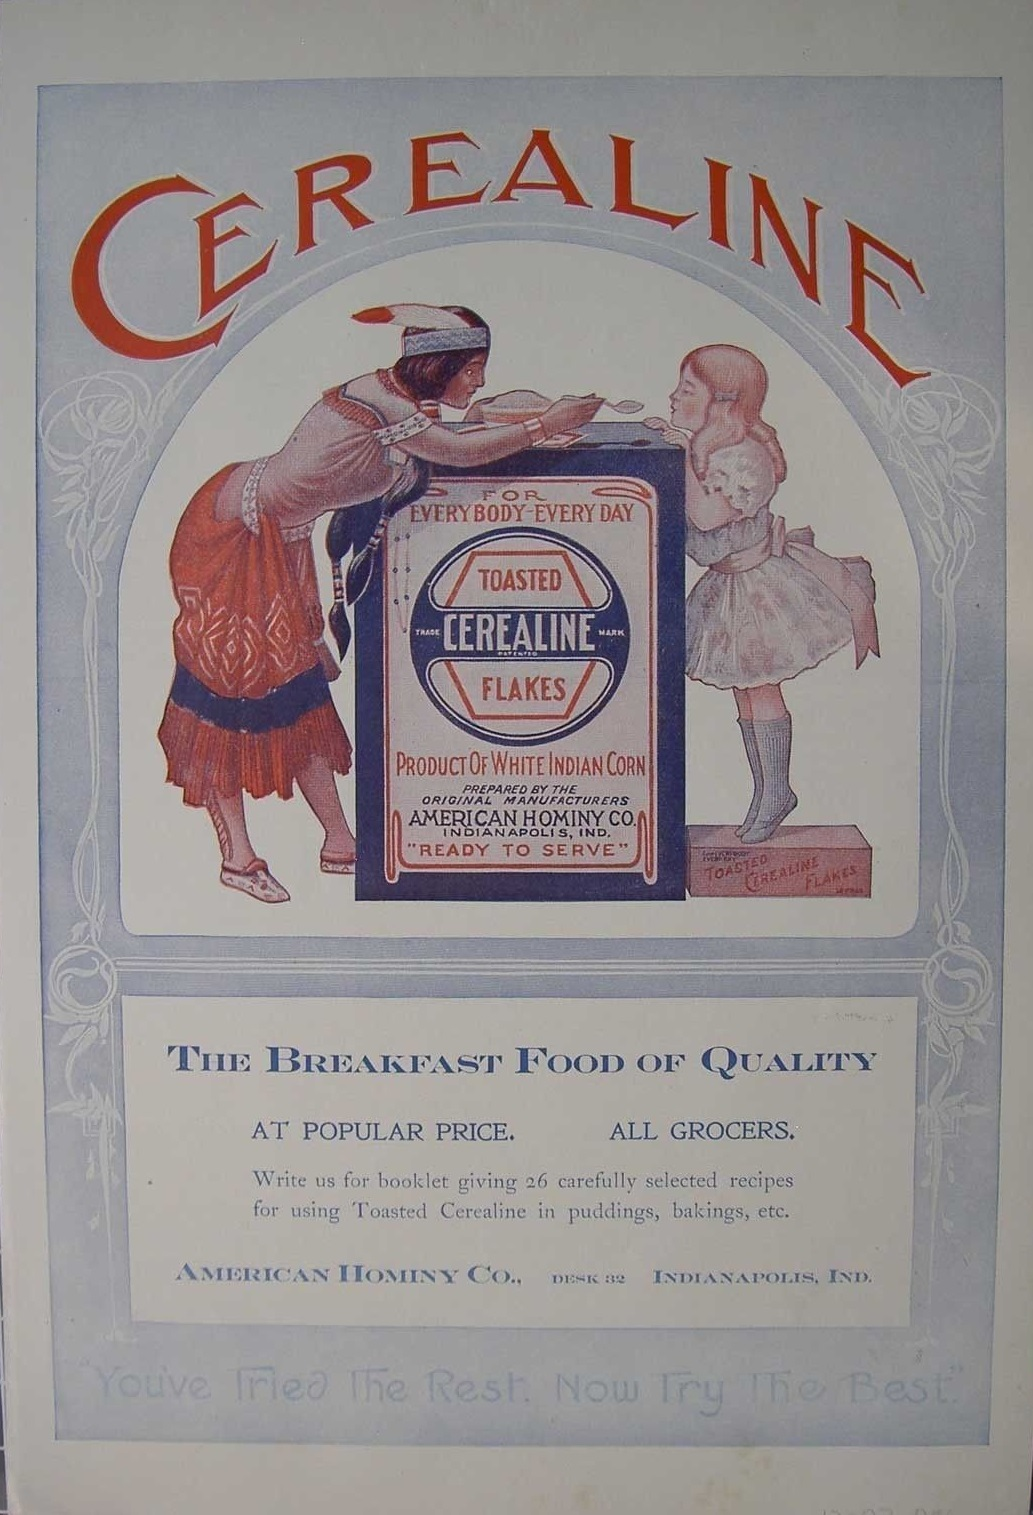 Sunday Adverts: American Hominy Company